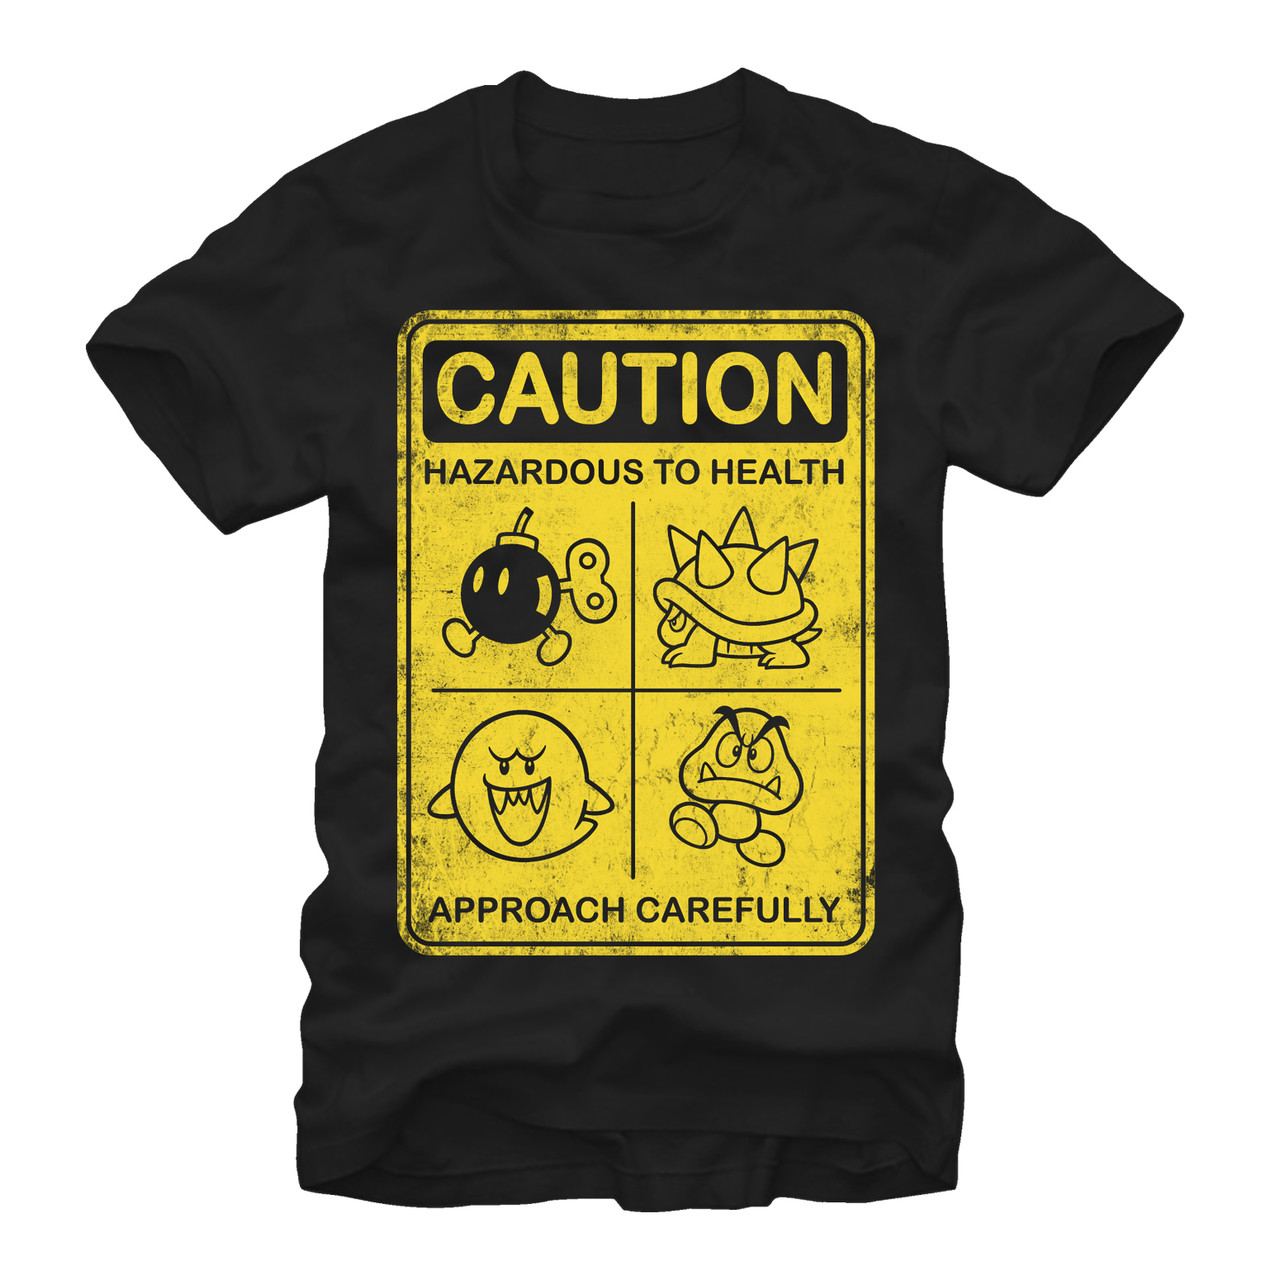 ed994277d51 Mario Bros Caution T-Shirt - NerdKungFu